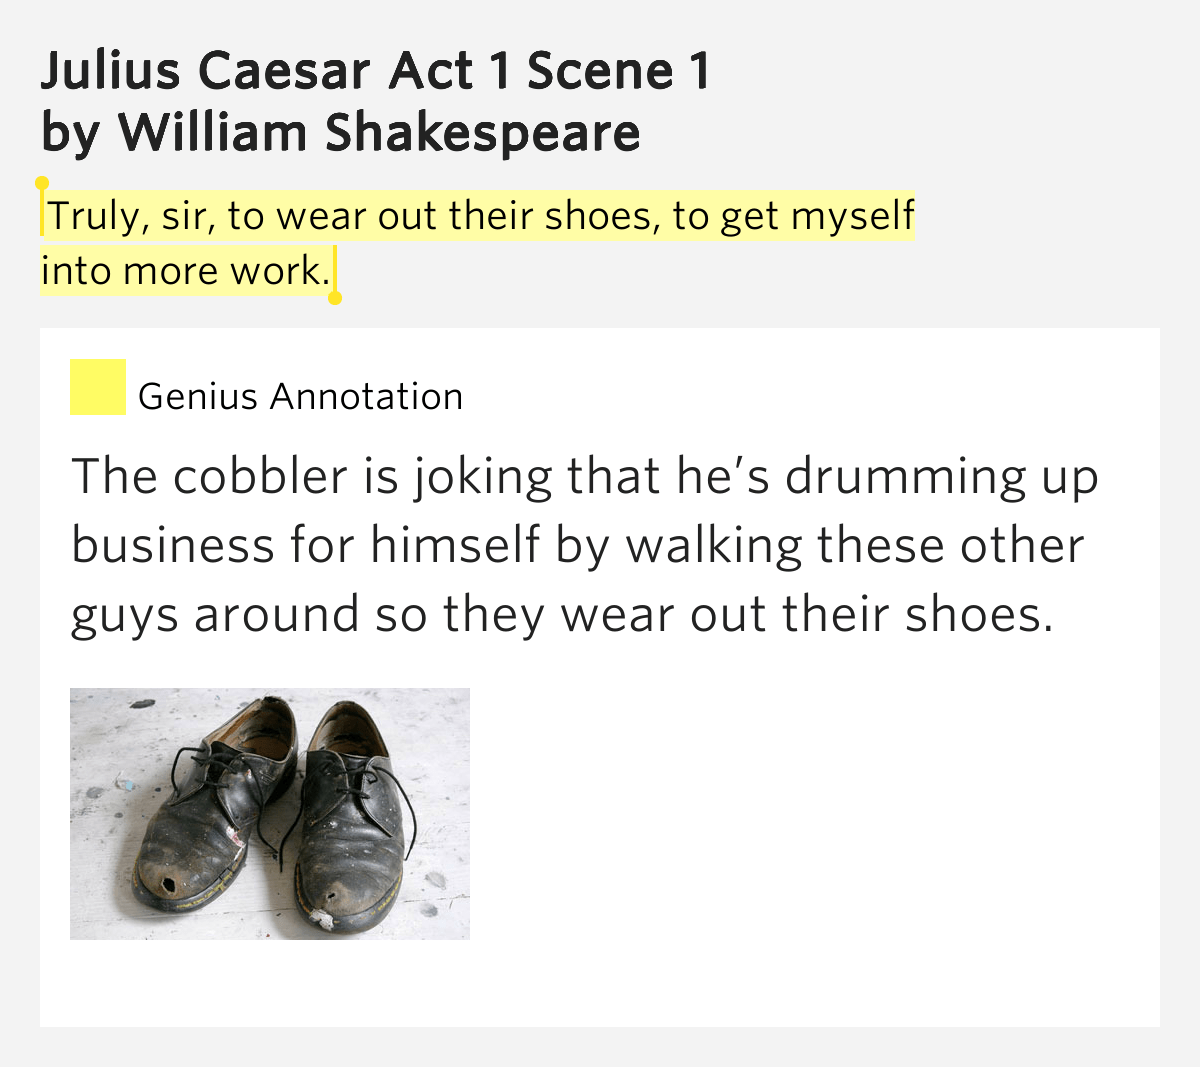 Truly Sir To Wear Out Their Shoes To Get Myself Into